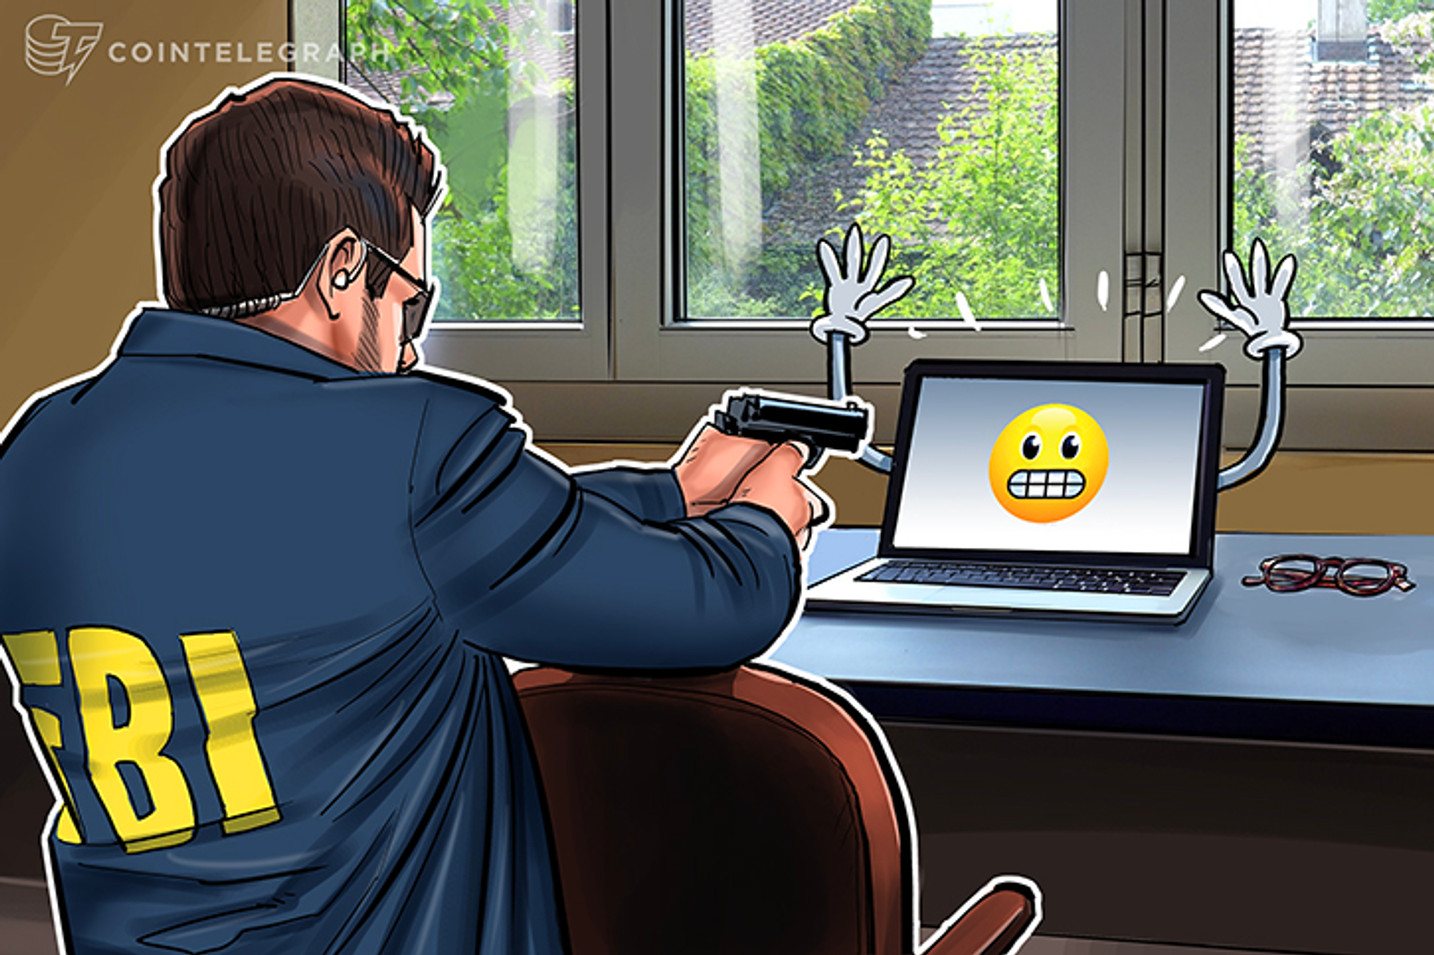 Crypto Death Threat Scams More Frequent, FBI Warns Cases Are 'Heavily Underreported'